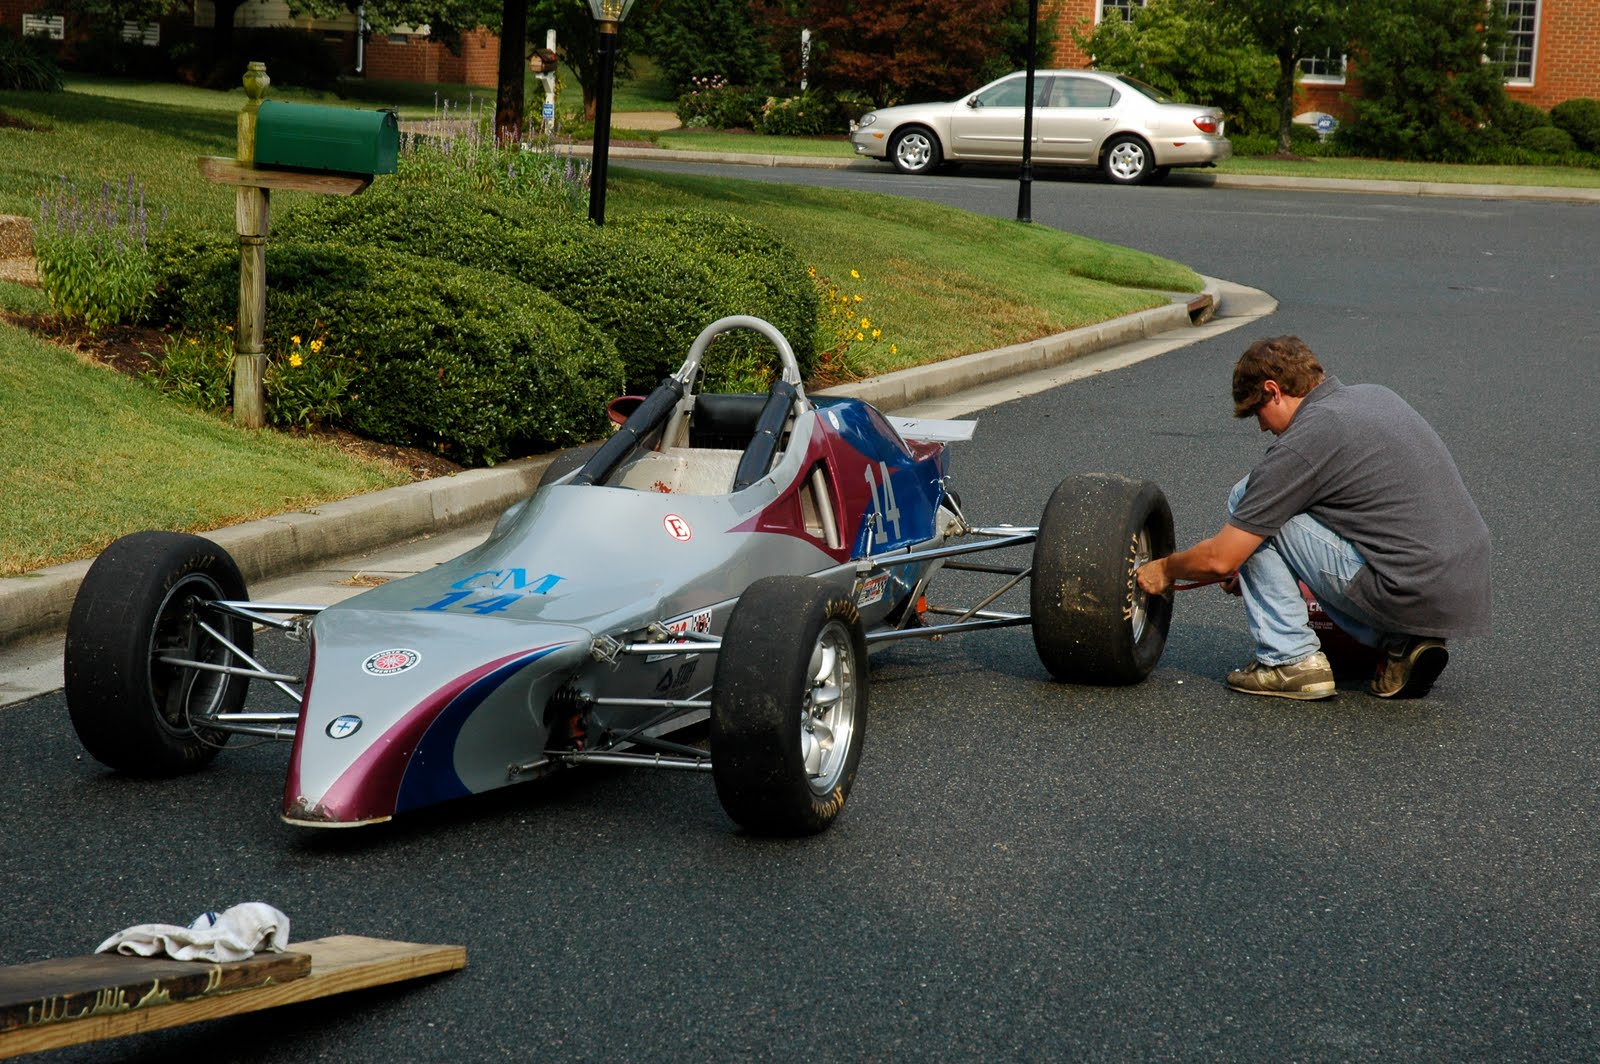 This Is Still My Favorite Car Ive Ever Driven Dad And I Bought In August 2007 To Race C Mod Autocross Class We Ran It For A